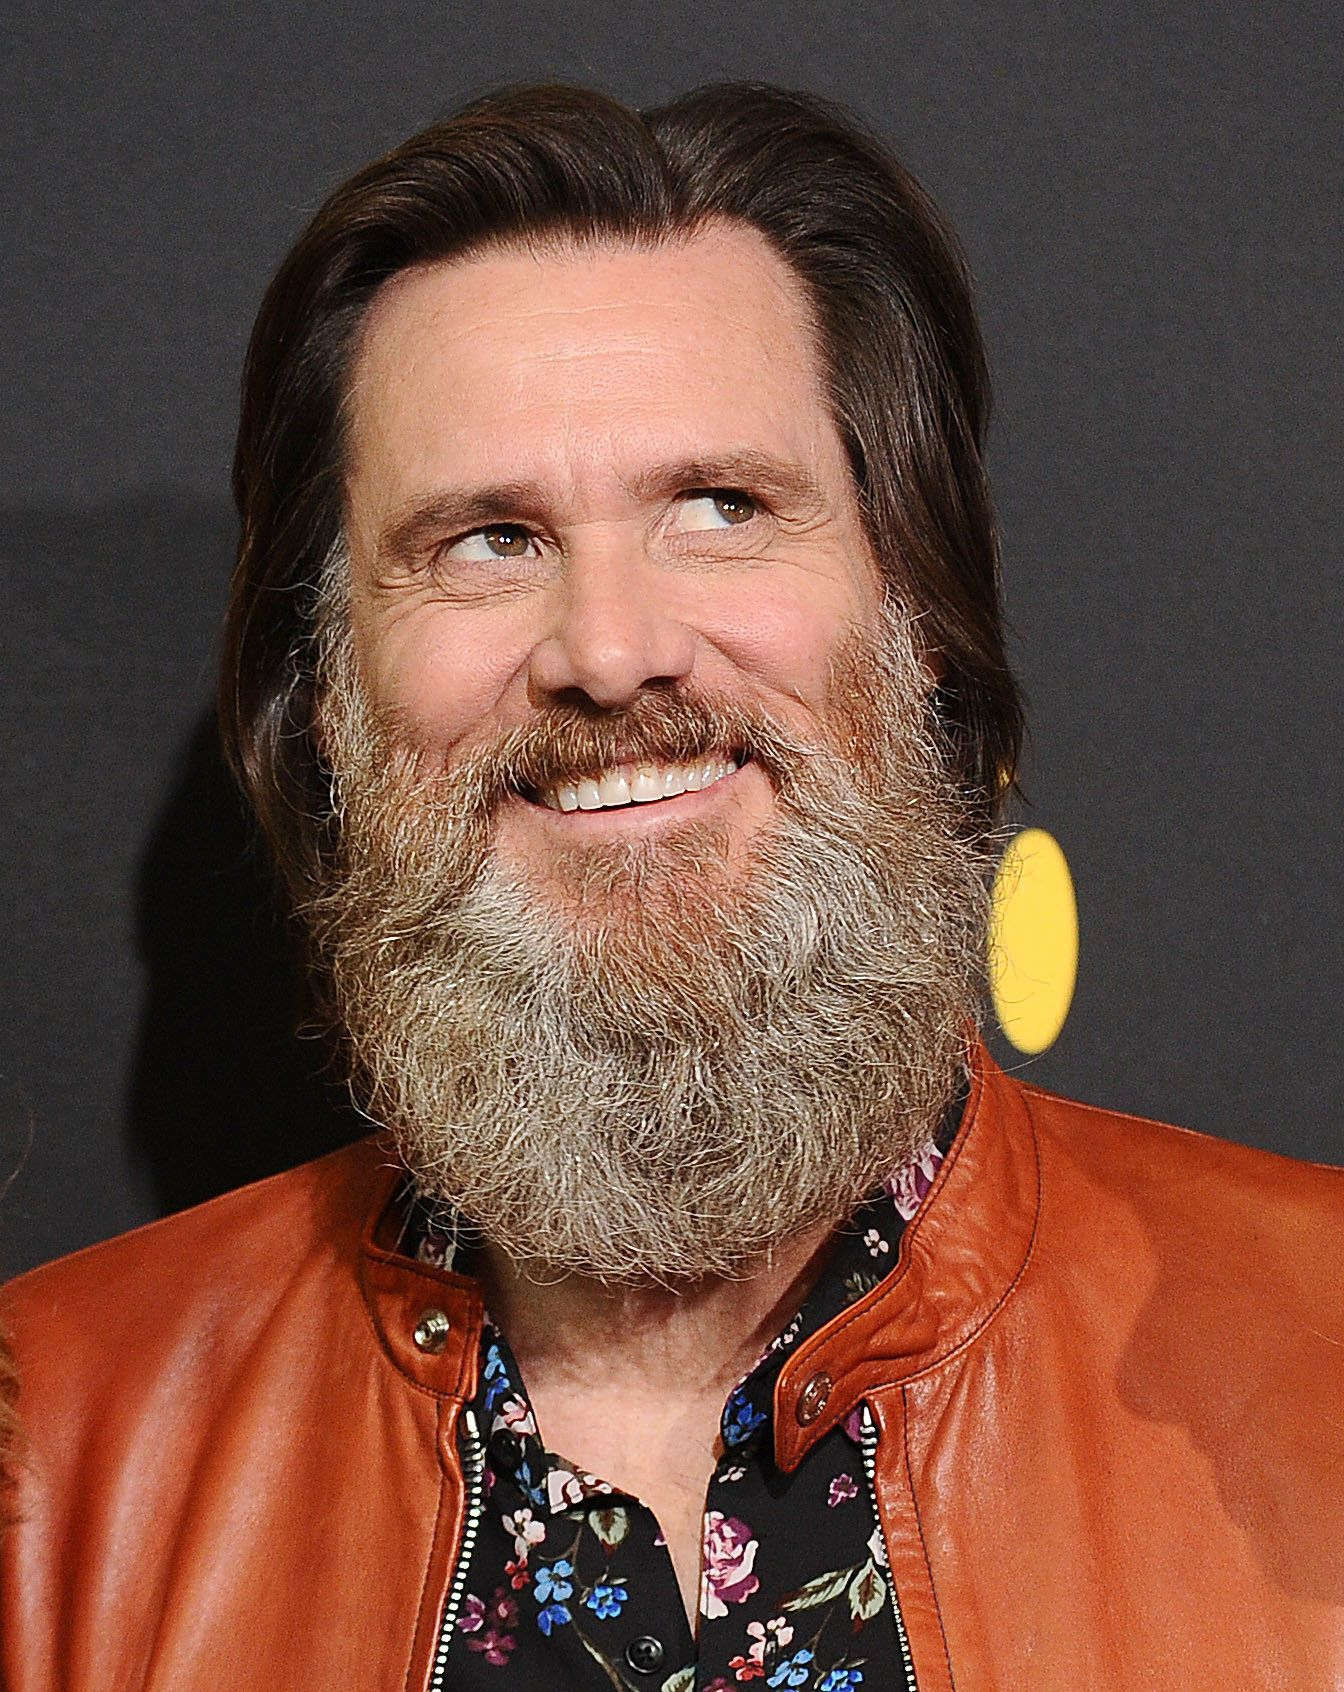 LOS ANGELES, CA - MAY 31:  Producer Jim Carrey attends the premiere of 'I'm Dying Up Here' at DGA Theater on May 31, 2017 in Los Angeles, California.  (Photo by Jason LaVeris/FilmMagic)